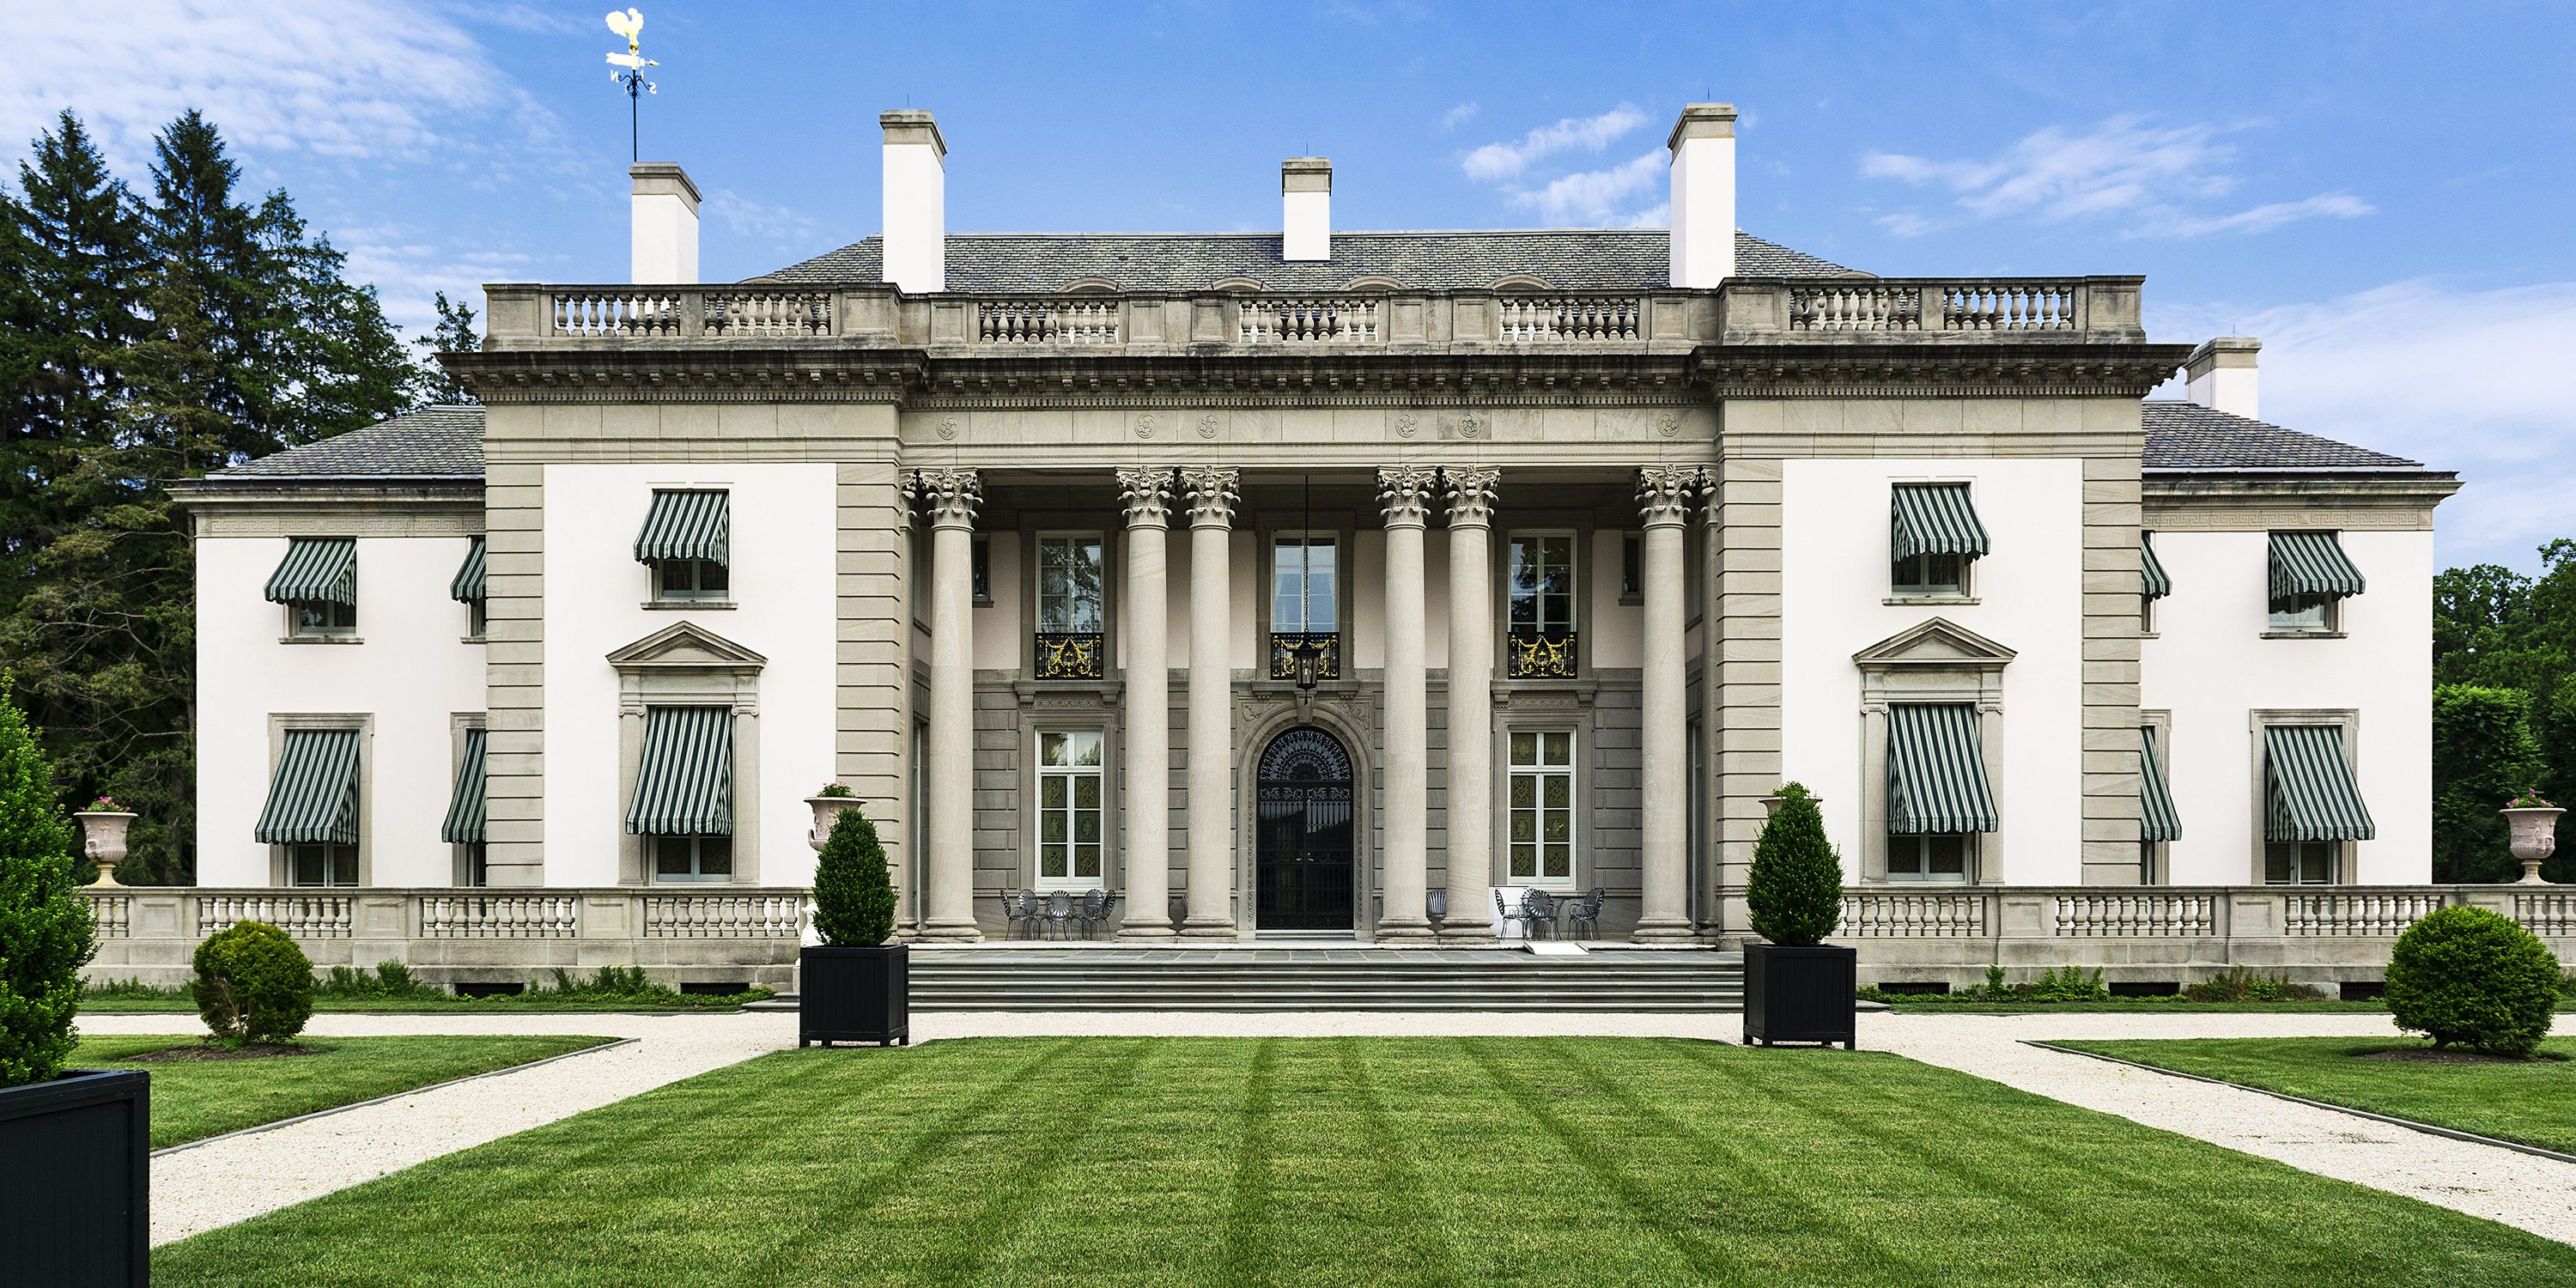 50 of the Most Famous Historic Houses In America - Historic ... Plantation Houses In Colonial Times on south carolina economy in colonial times, sugar in colonial times, zinc in colonial times, schools in colonial times, towns in colonial times, construction in colonial times, america in colonial times, forests in colonial times, agriculture in colonial times, farms in colonial times, gardens in colonial times, education in colonial times, timber in colonial times, tobacco in colonial times, reel in colonial times, slavery in colonial times, shipping in colonial times, houses in colonial times, roads in colonial times, fishing in colonial times,